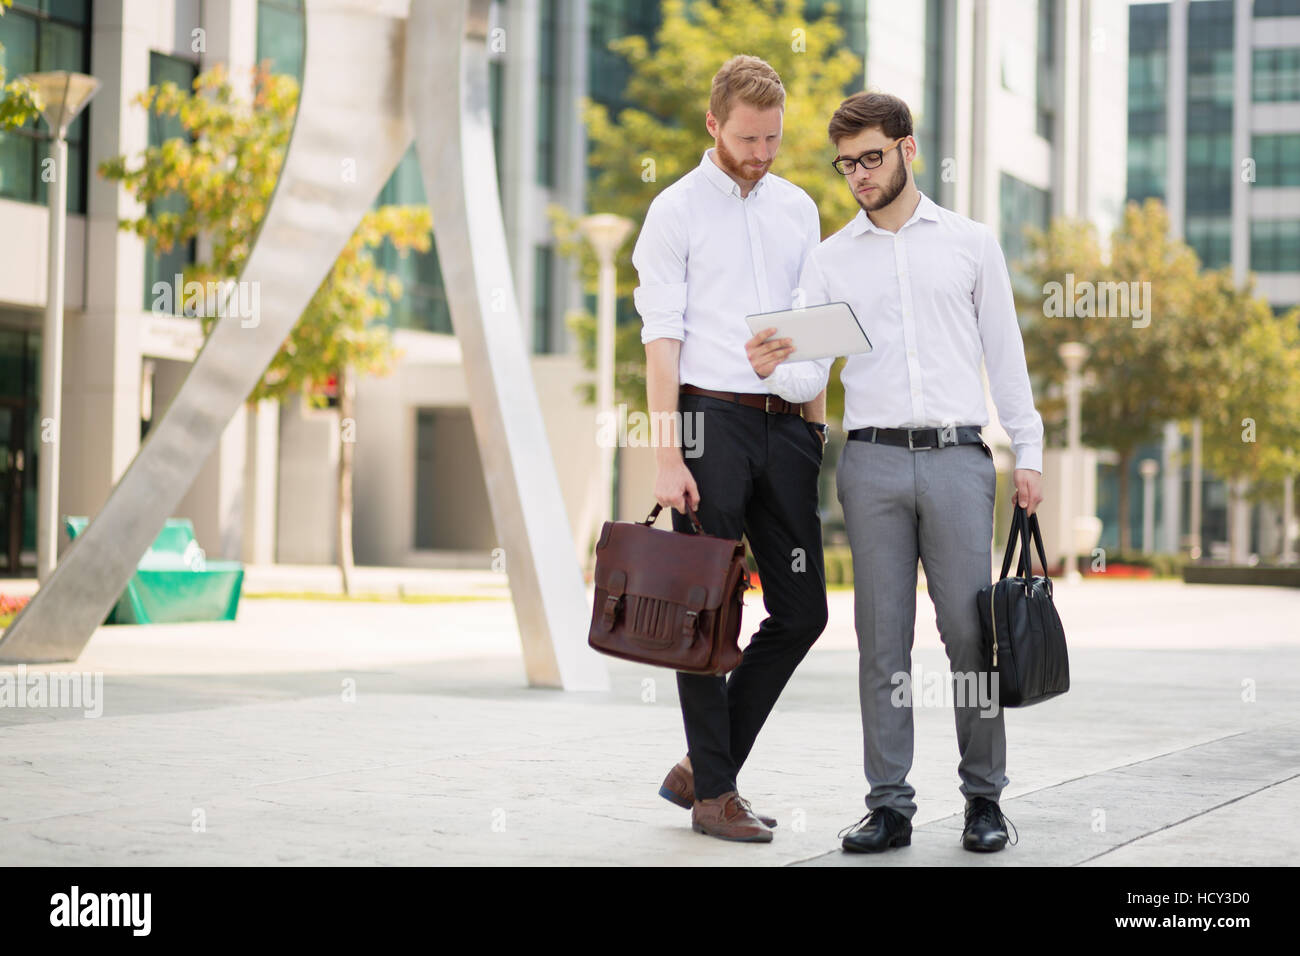 Busy business people using technology on street - Stock Image